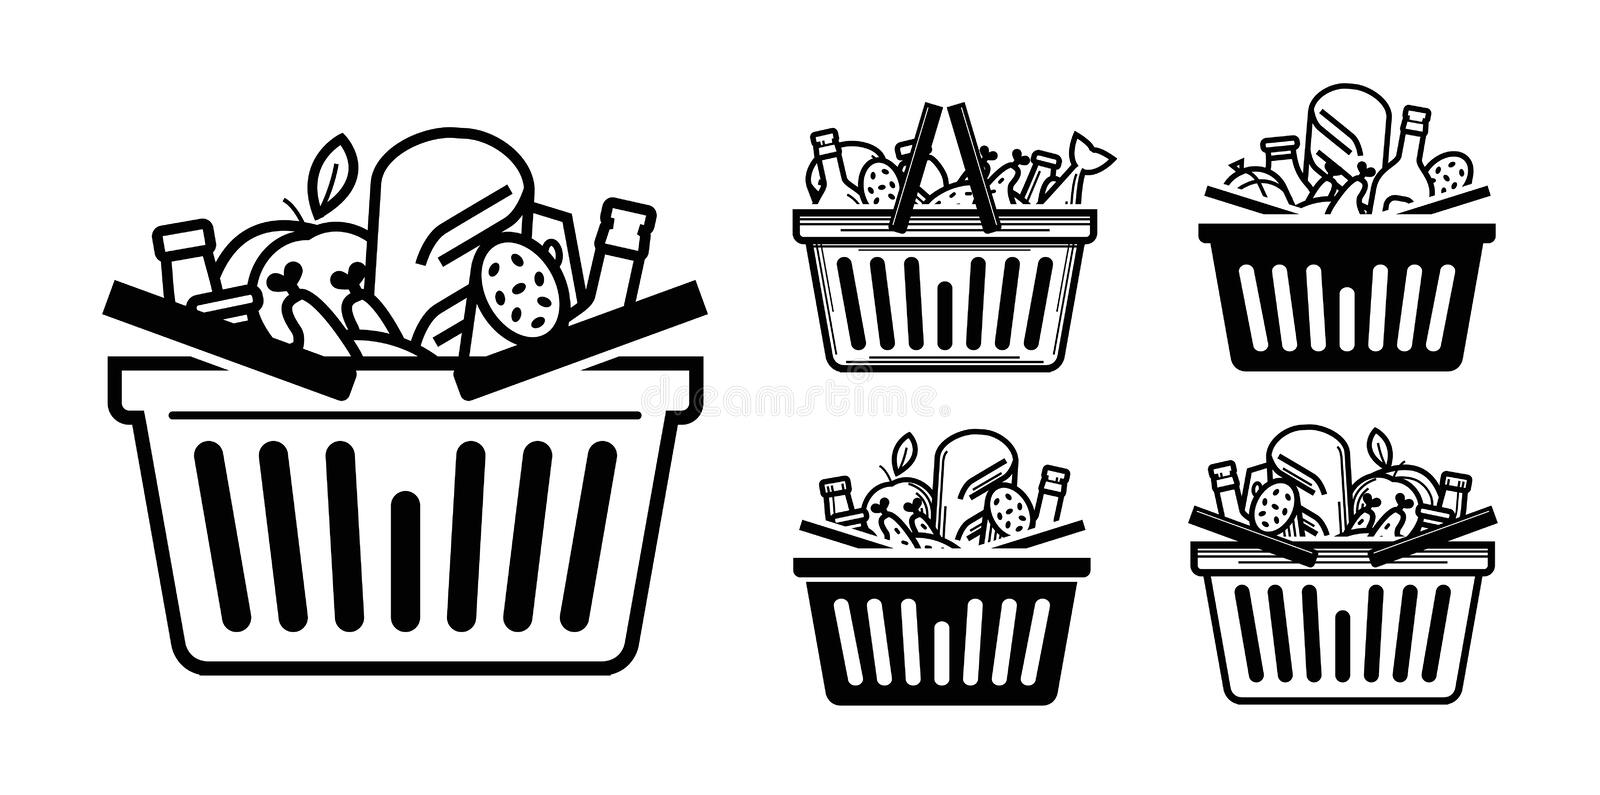 Grocery store icon. Shopping cart or basket full with food and drinks. Vector illustration royalty free illustration